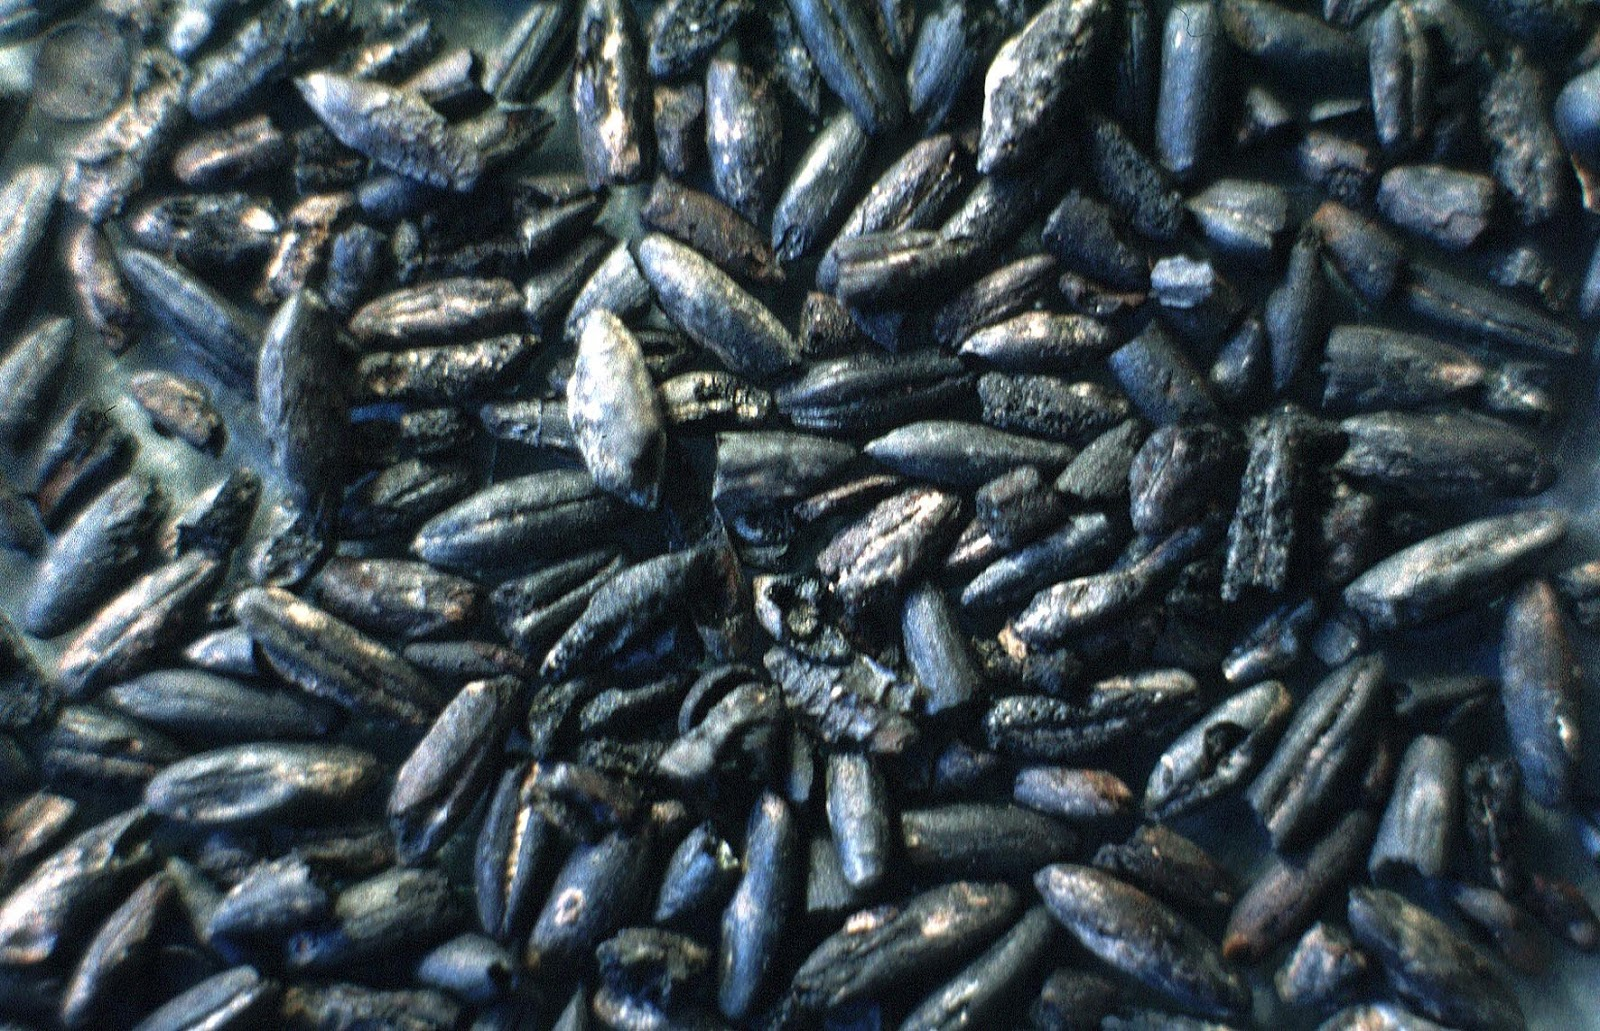 hight resolution of charred oat grains